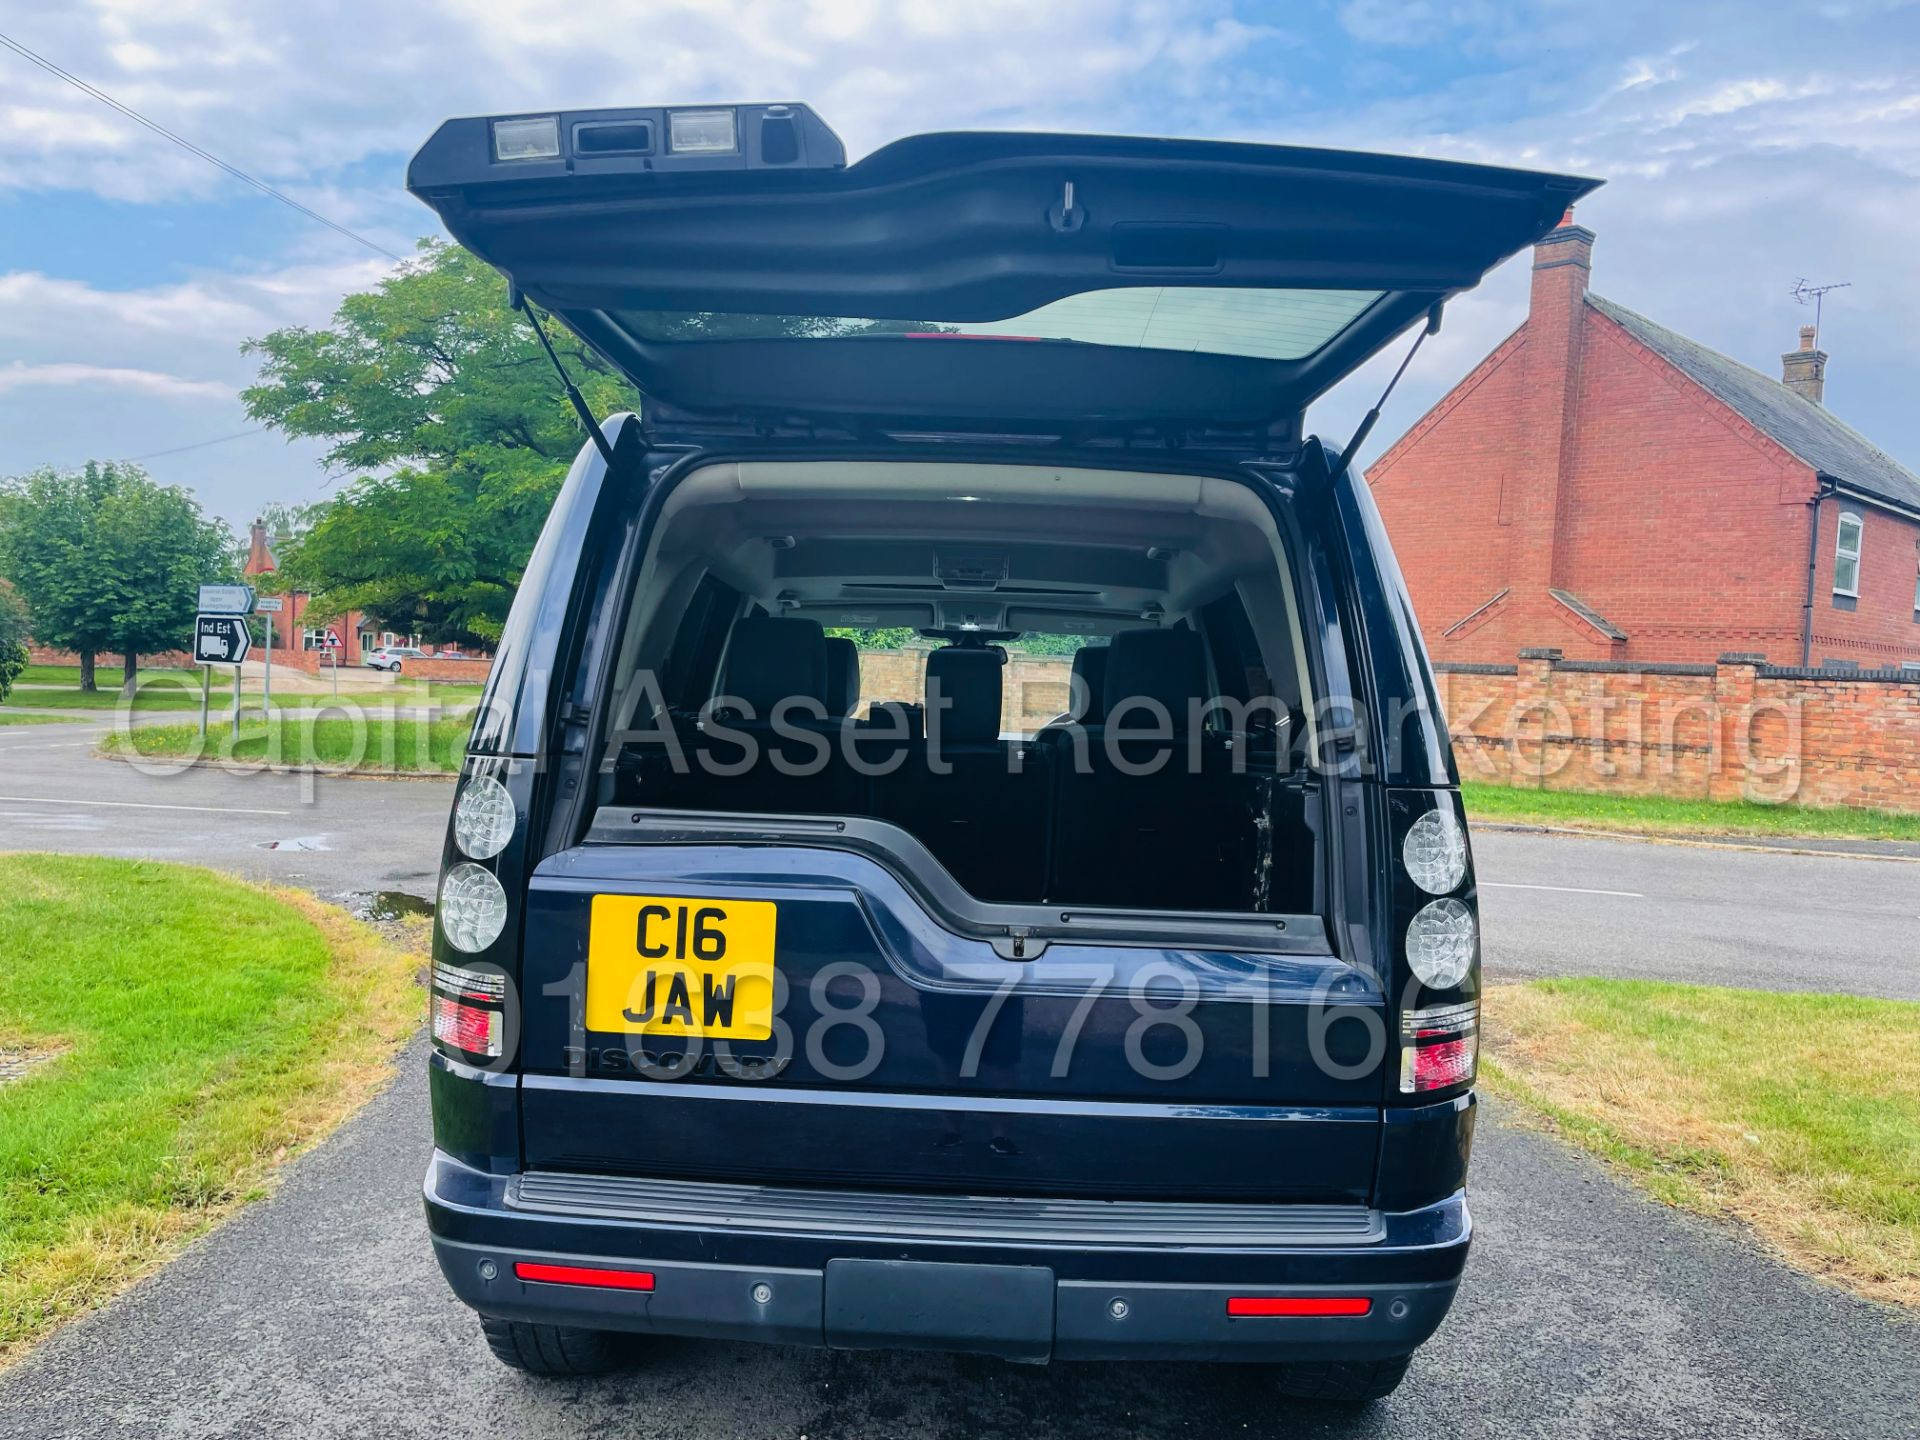 LAND ROVER DISCOVERY 4 *HSE* 7 SEATER SUV (2014 - NEW MODEL) '3.0 SDV6 - 255 BHP - 8 SPEED AUTO' - Image 29 of 61